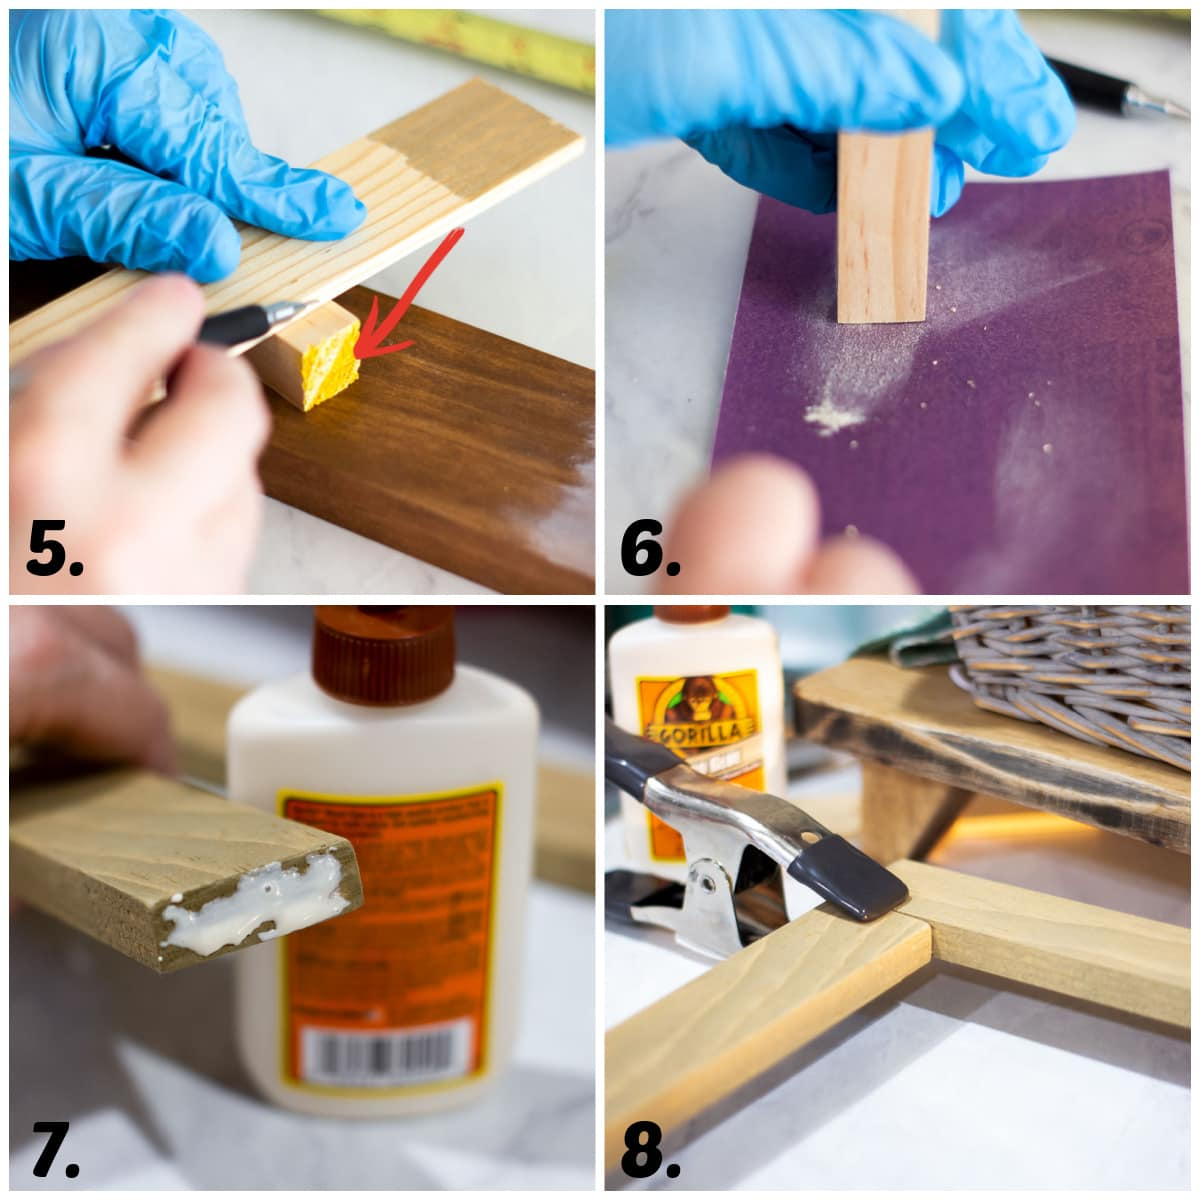 diy custom wood frame with glass no power tools collage of tutorial steps gluing wood